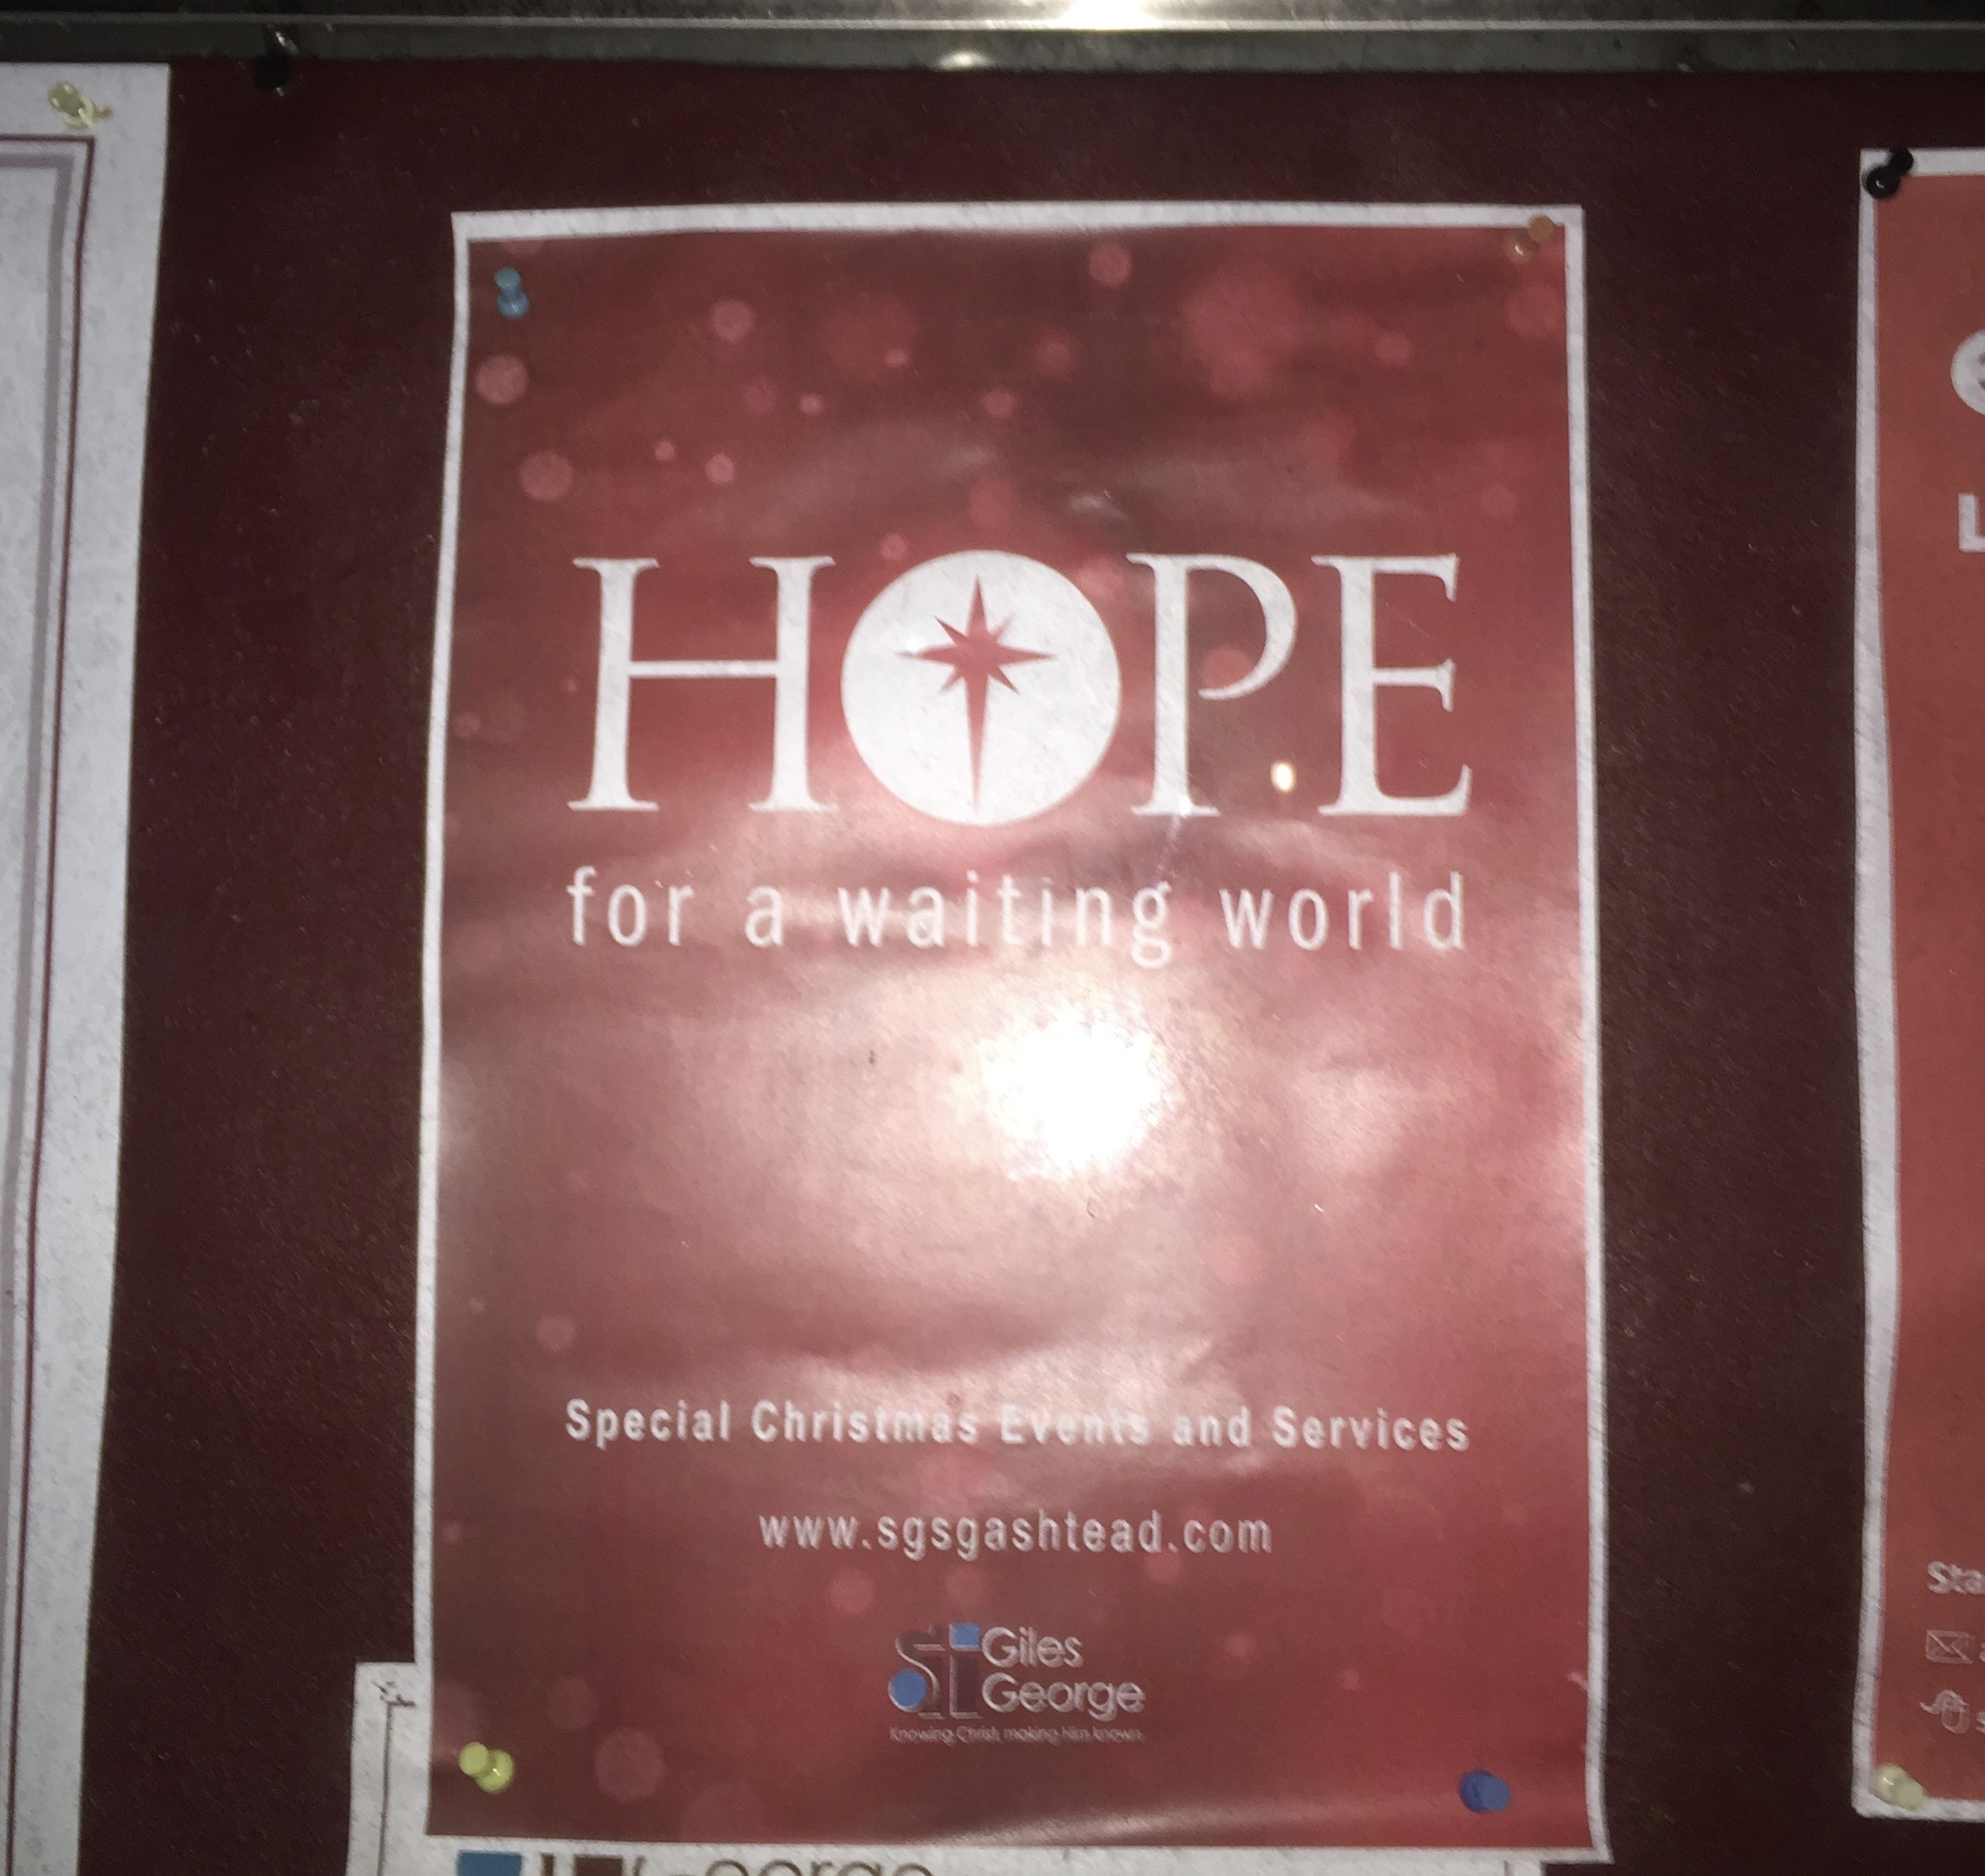 After singing of being given hope, the group passed this poster..